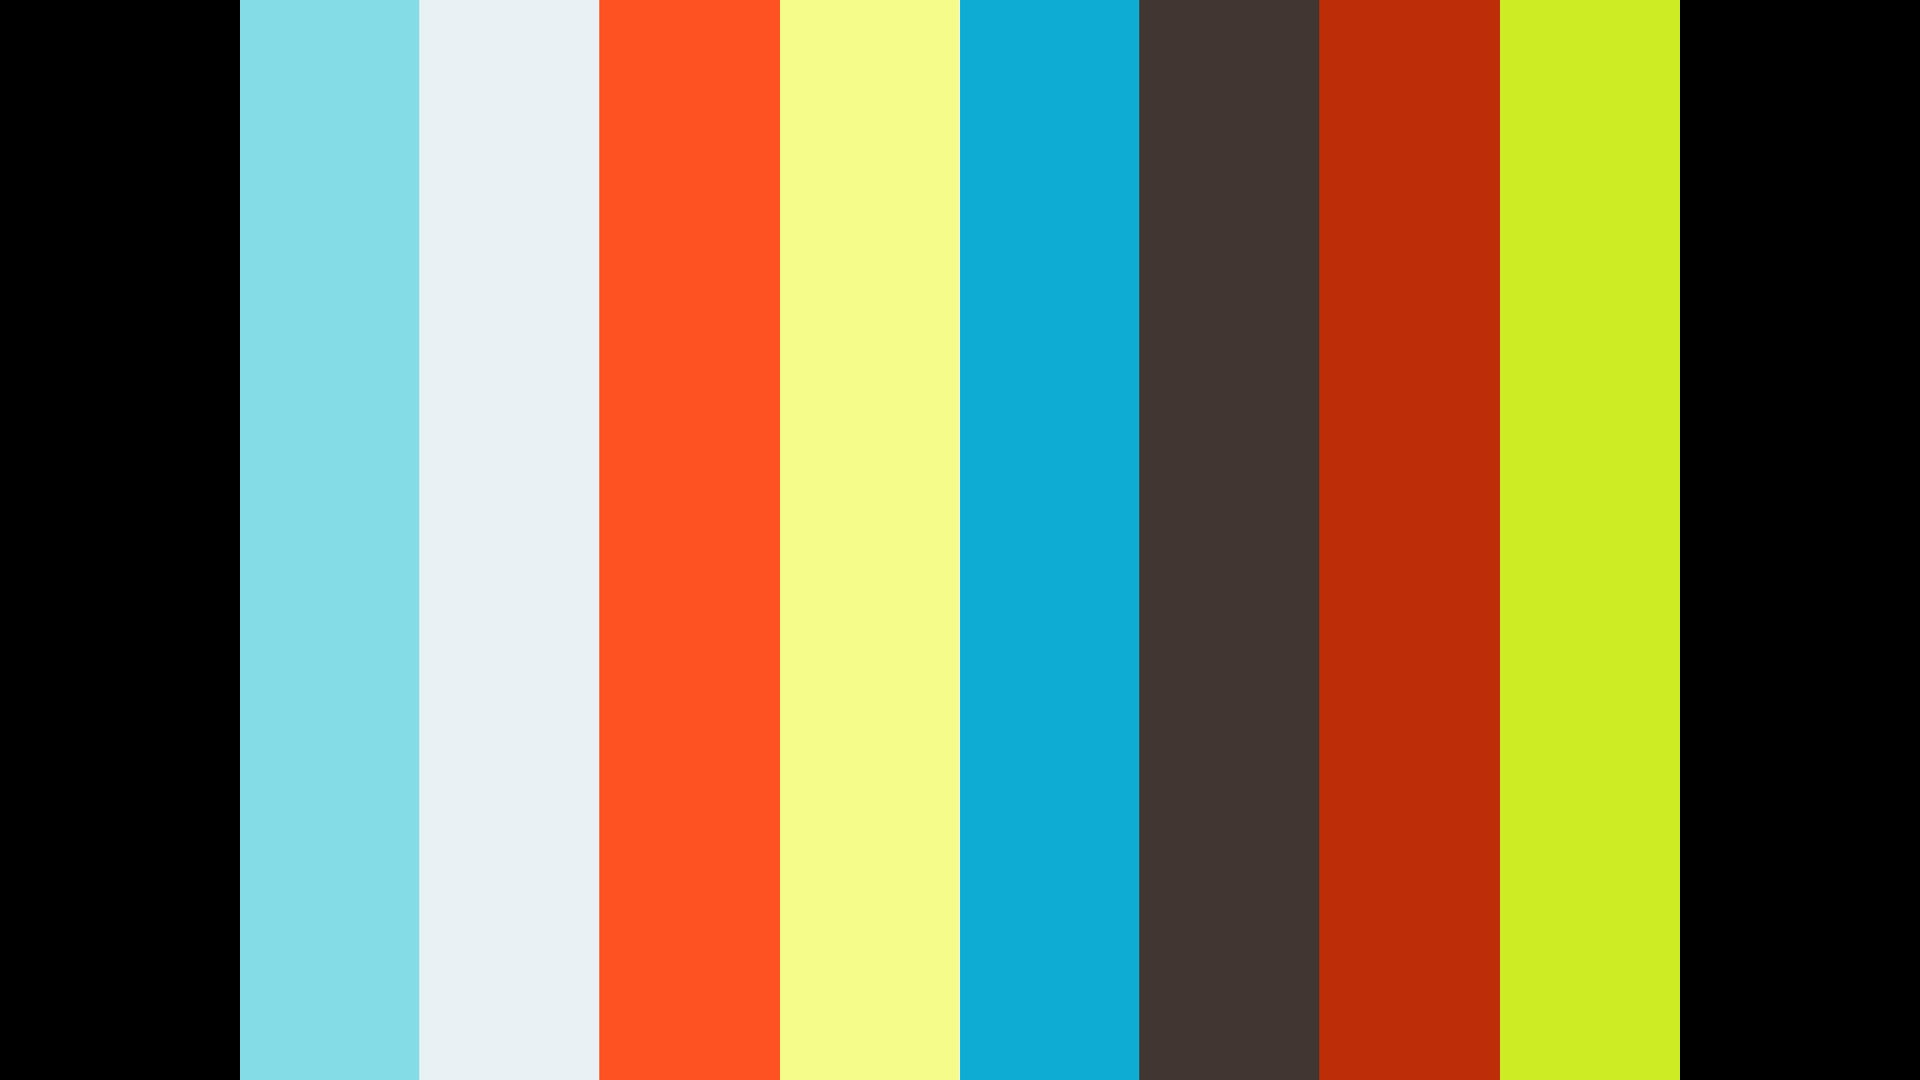 Brentwood Dental Specialists Commercial V2